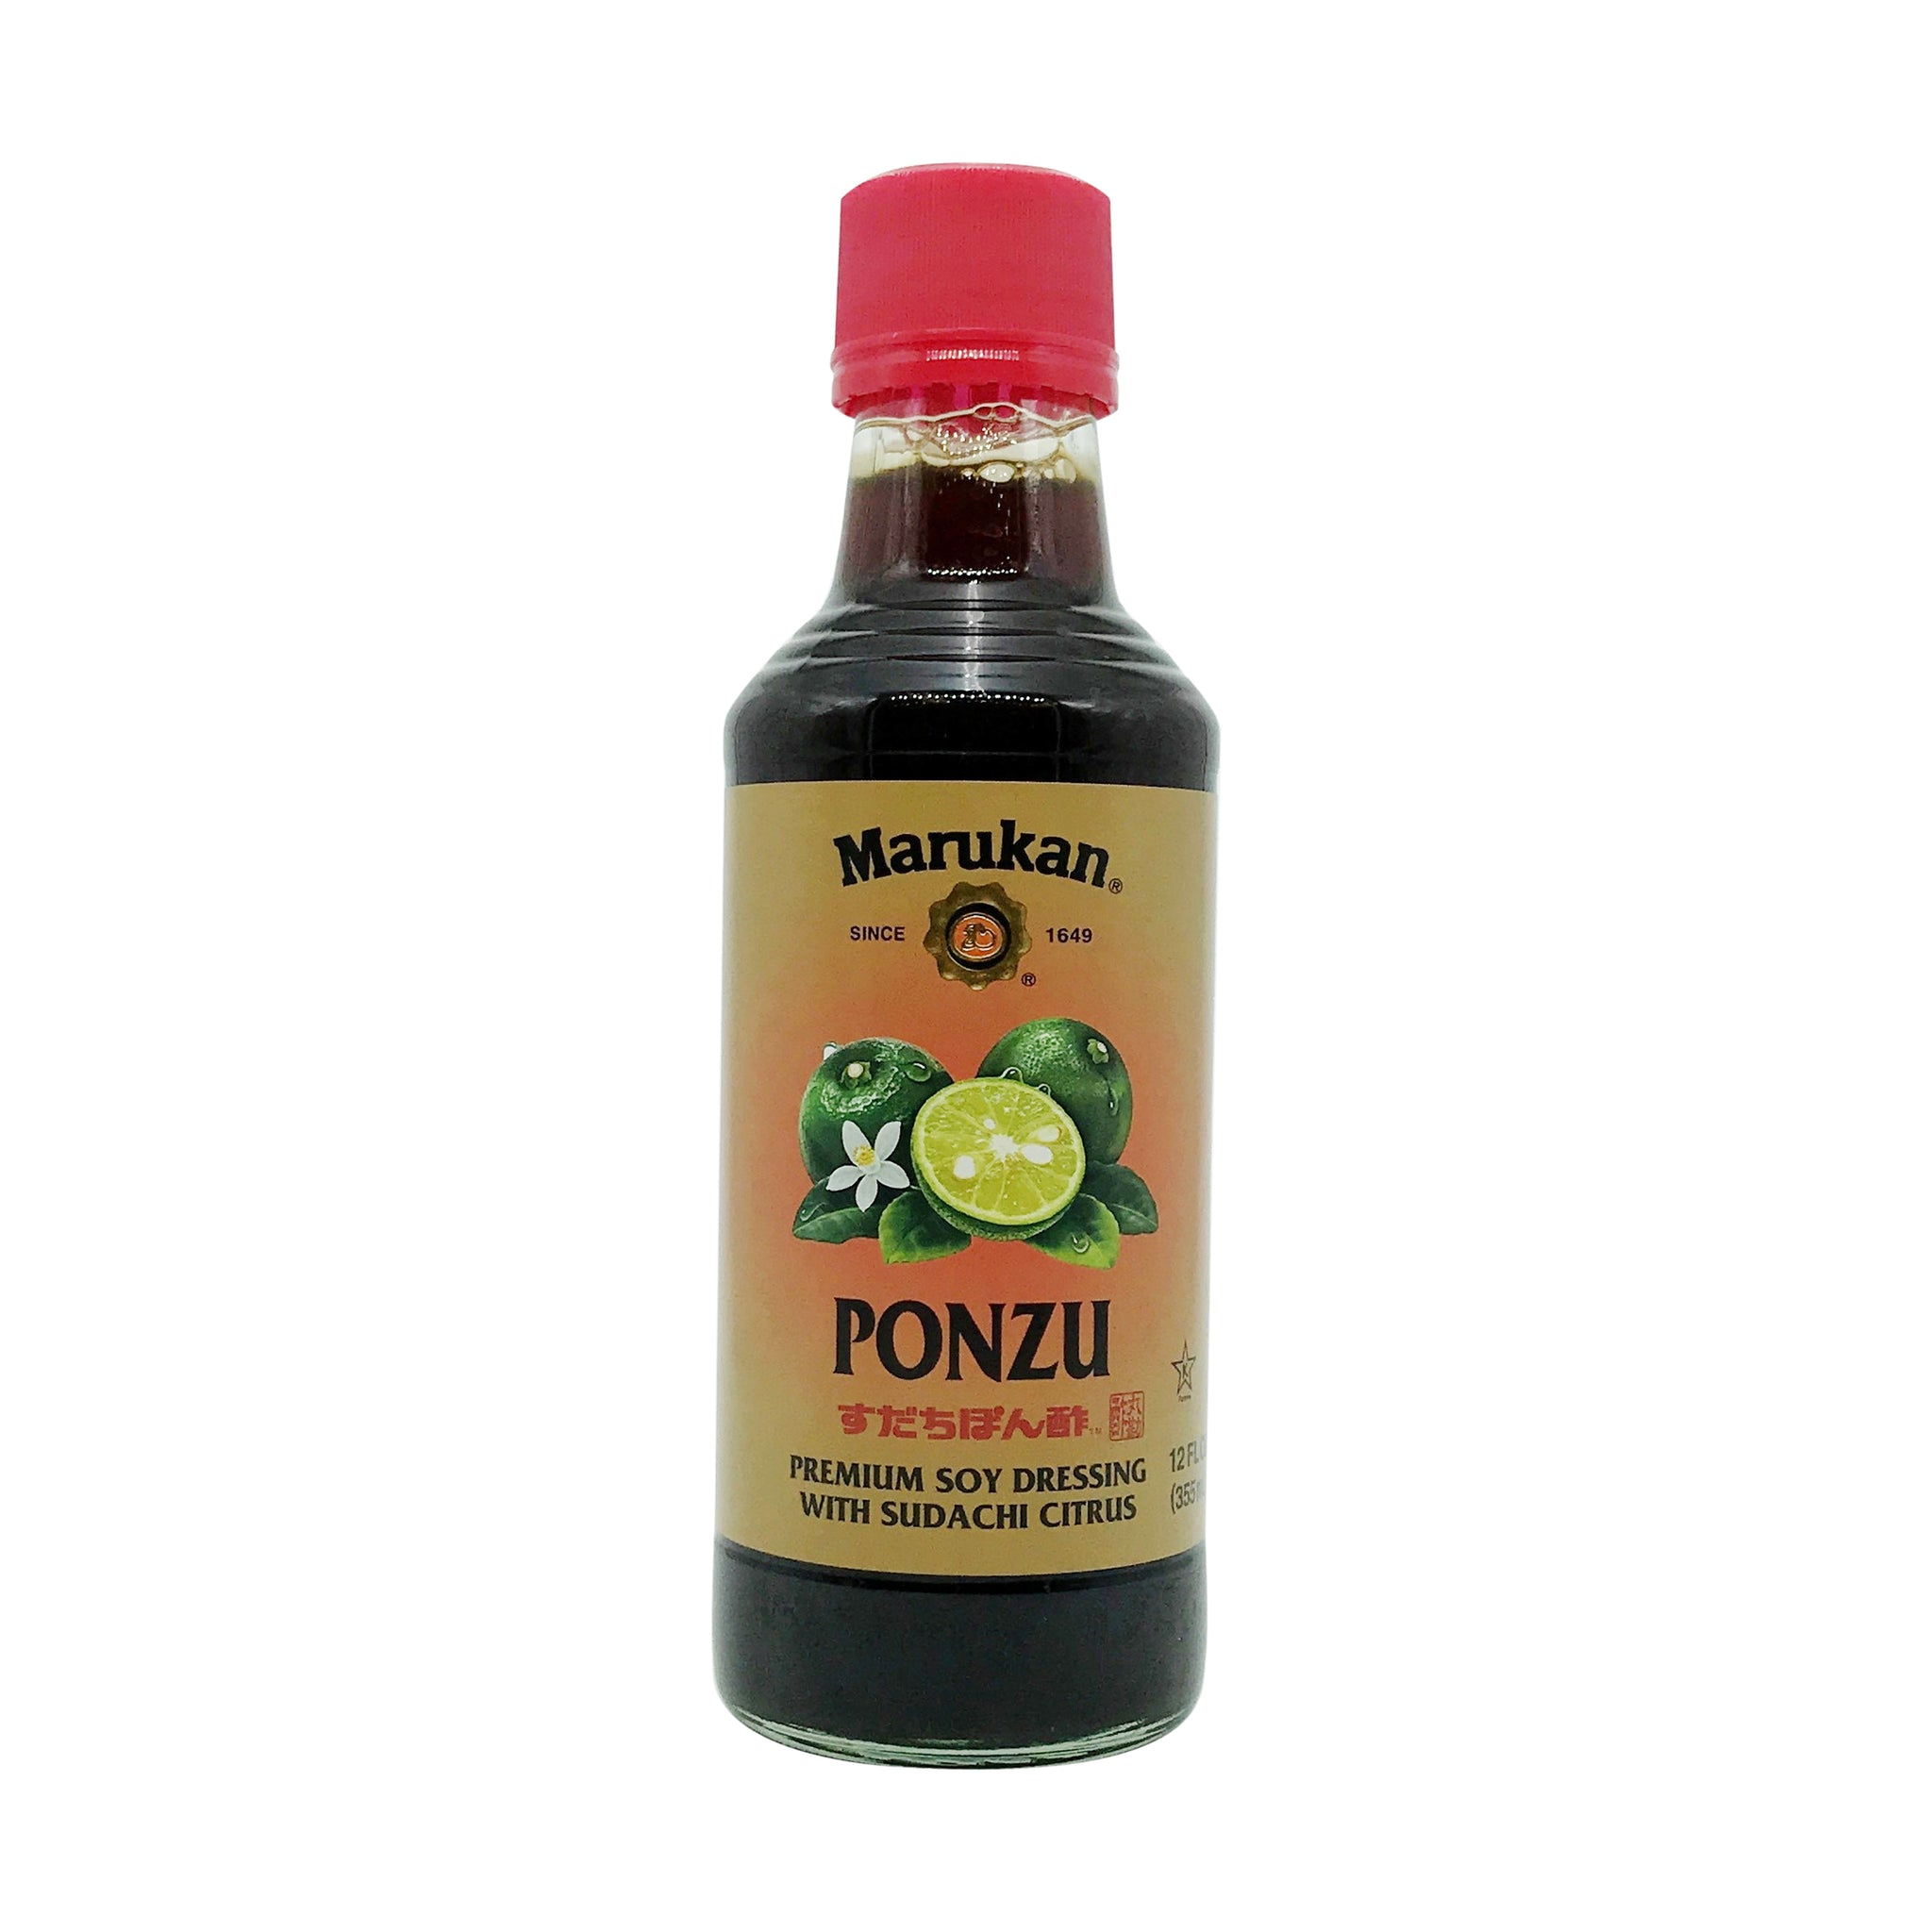 Condiments - Ponzu Soy Dressing, Grocery, Anneliese Schools - LIESAS